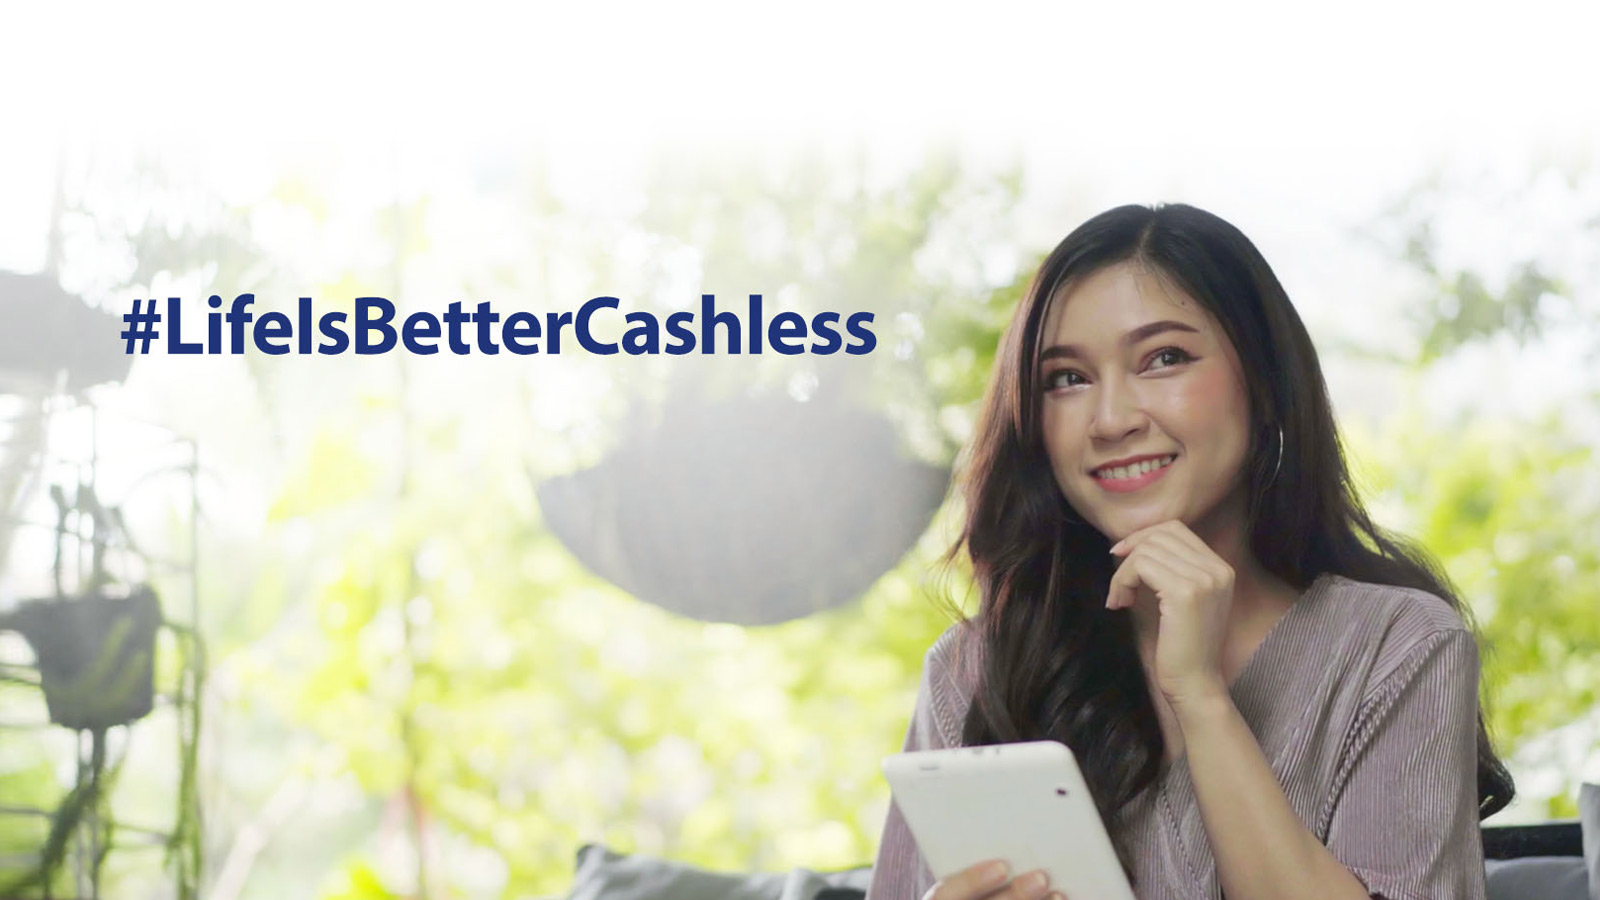 lifeisbettercashless